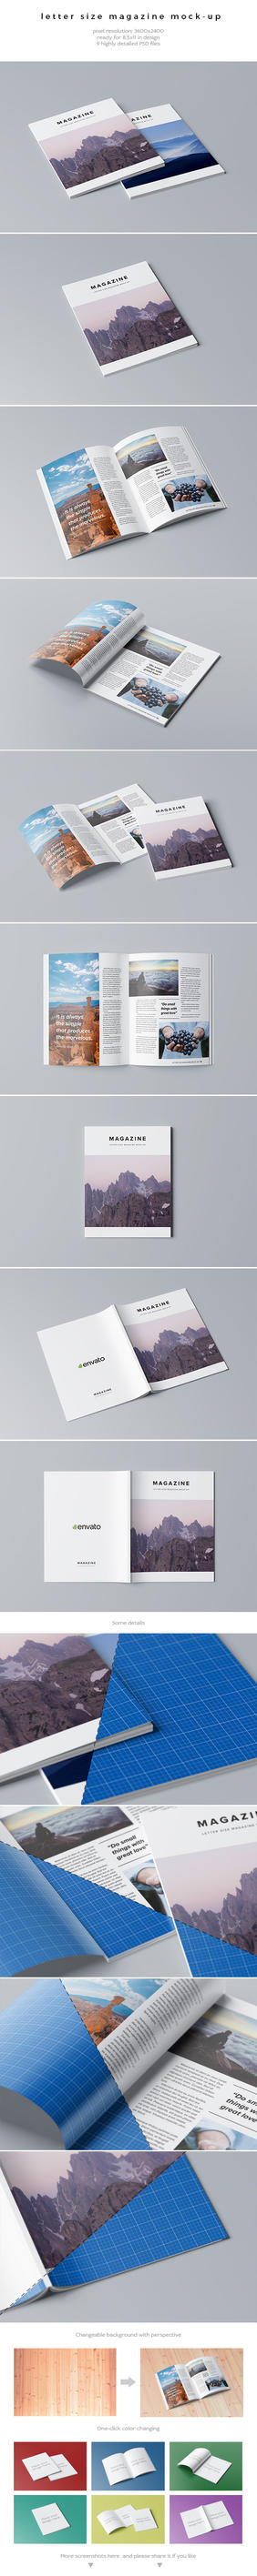 Letter Size Magazine Mock-Up by kotulsky